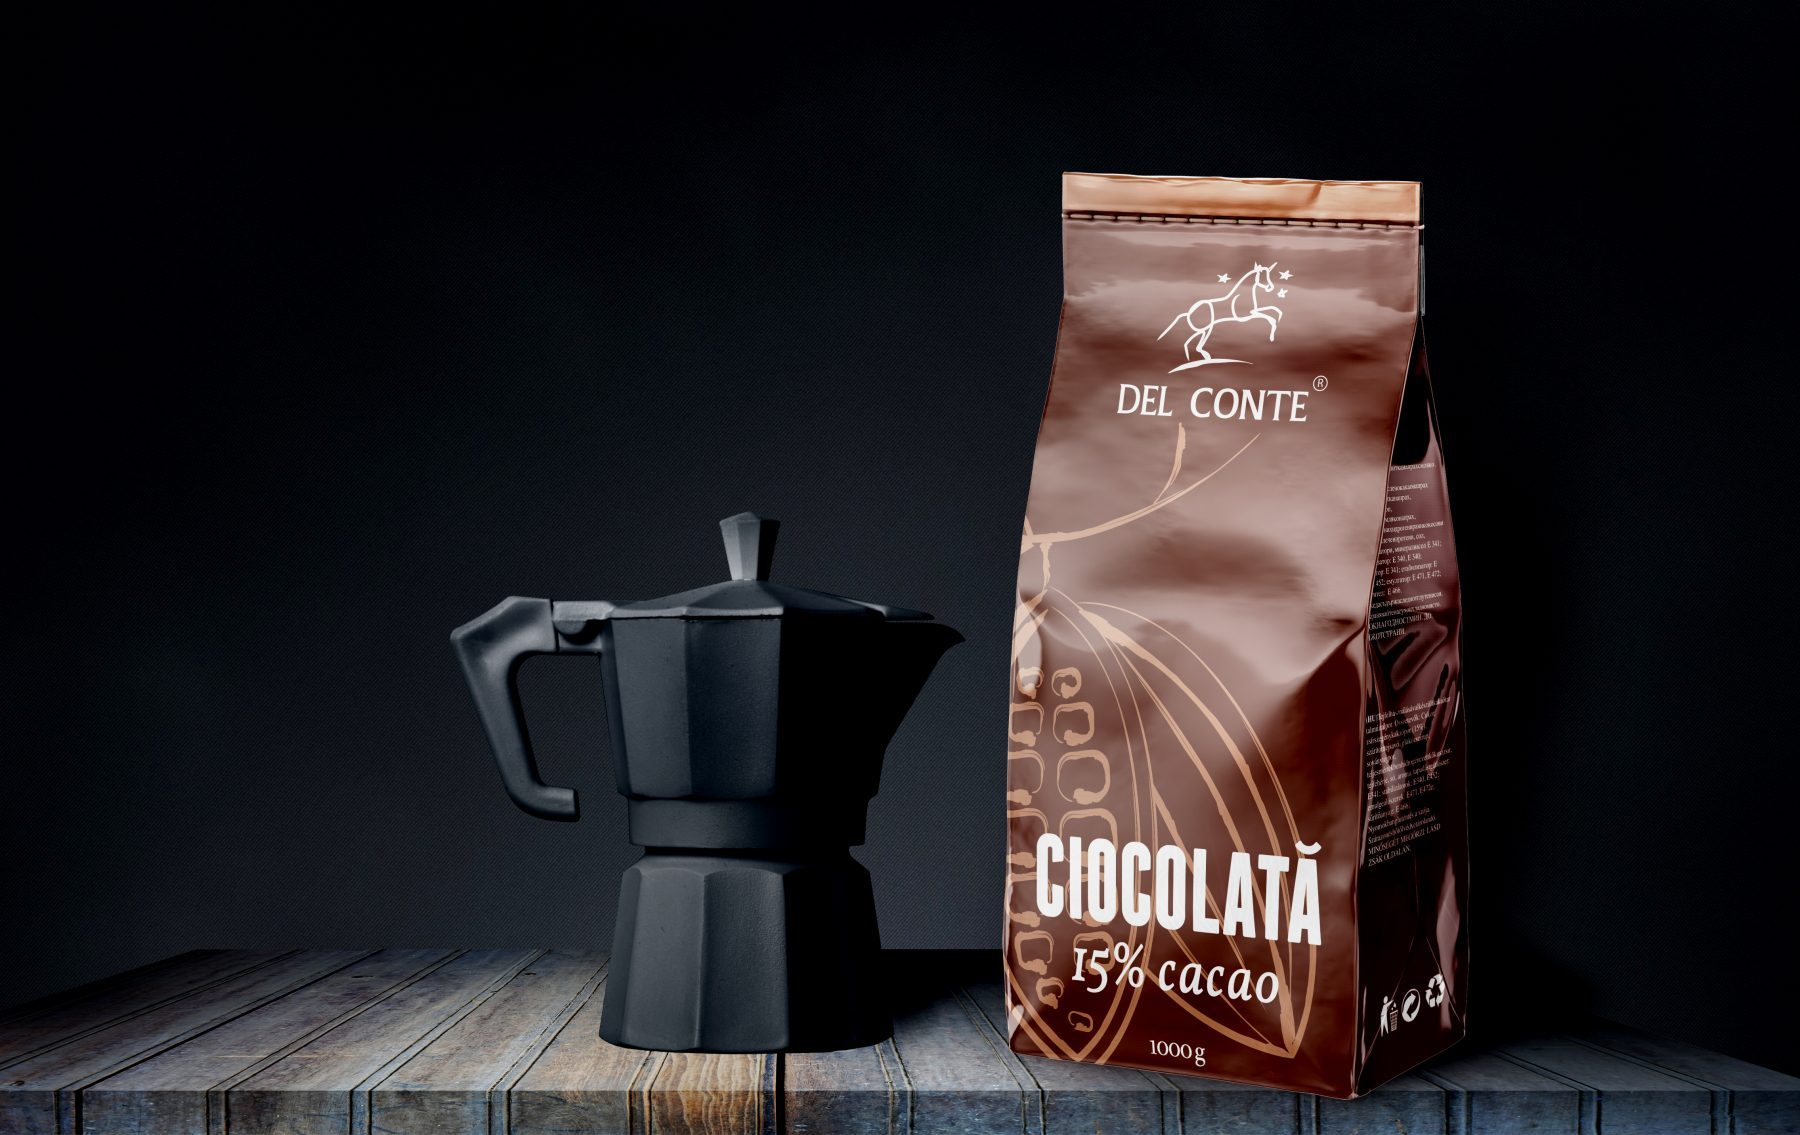 Del Conte Packaging design Chocolate